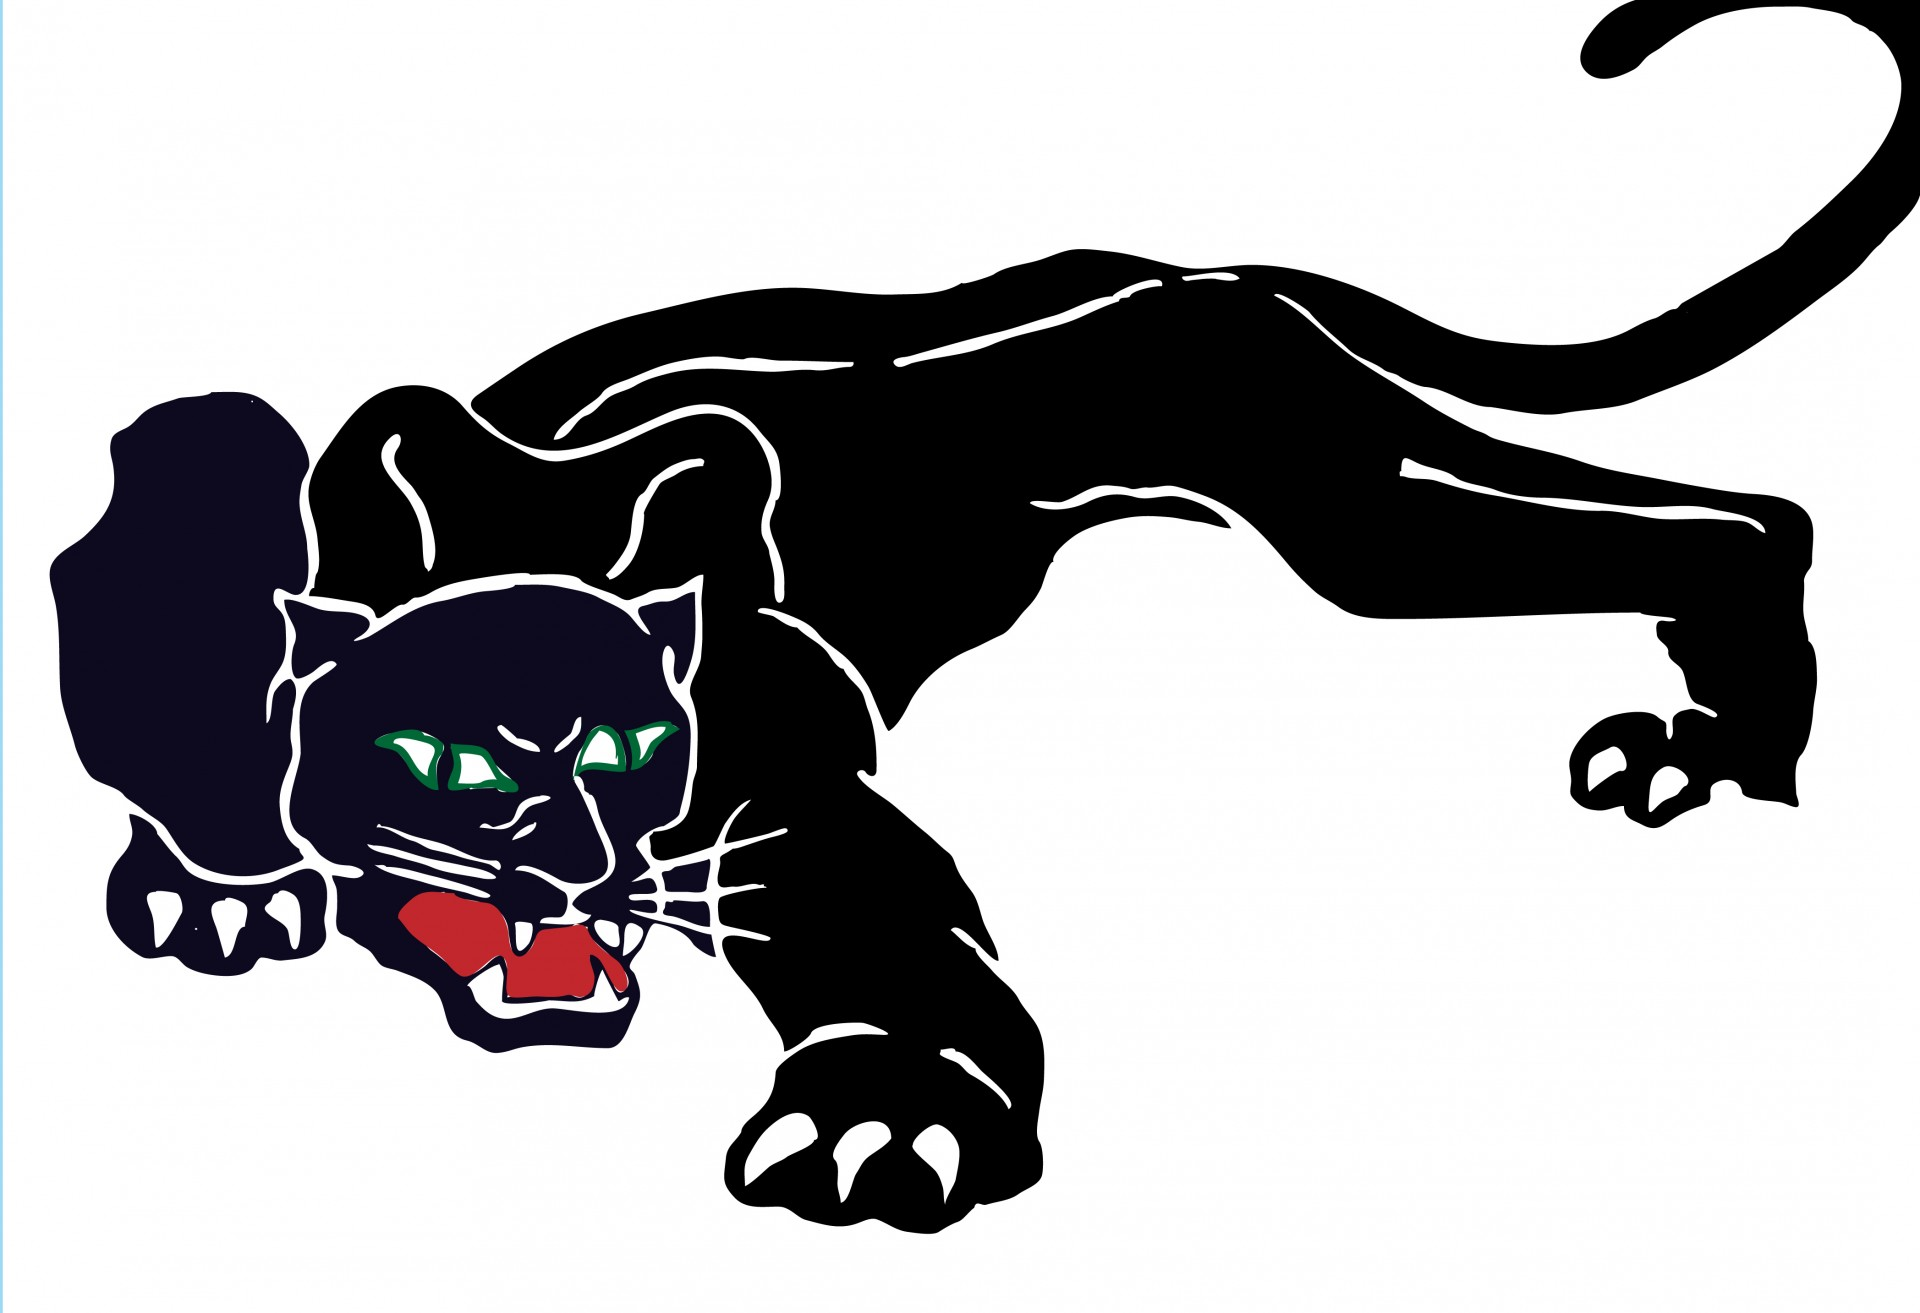 Panther clipart. Black free stock photo